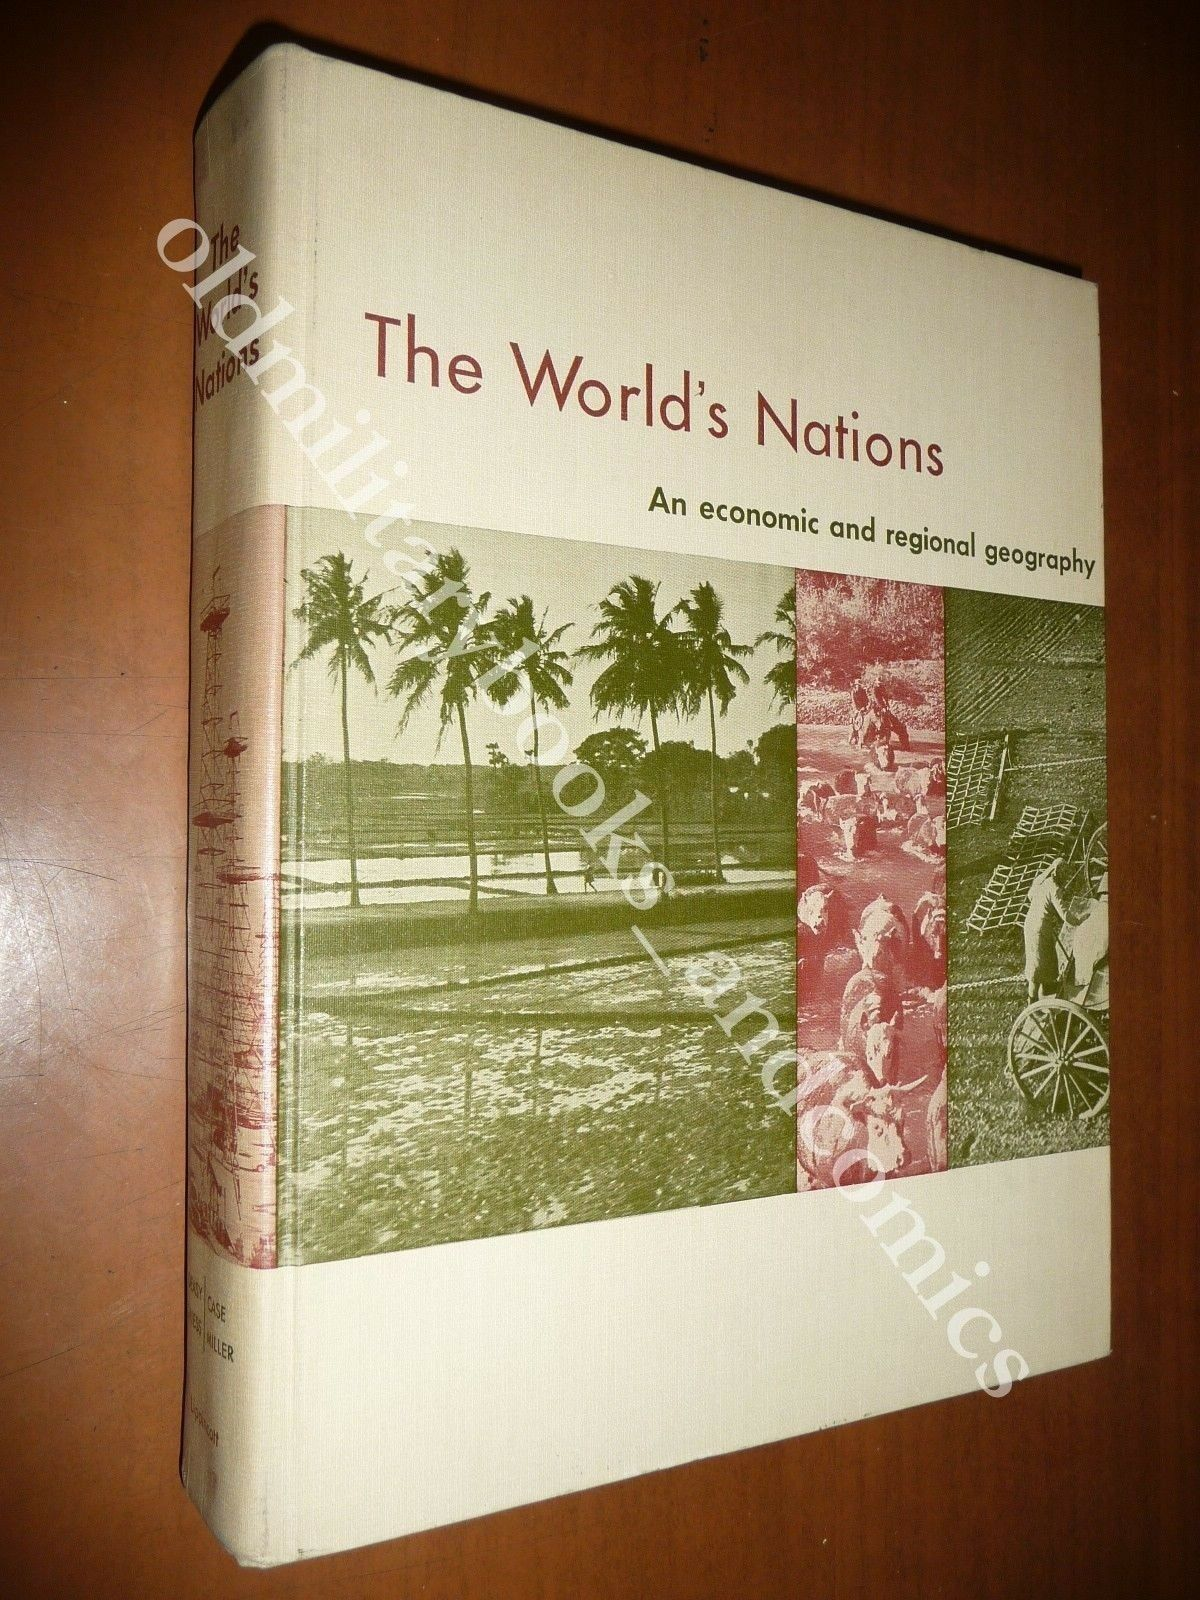 THE WORLD'S NATIONS DEASY-CASE-GRIESS-MILLER 1958 ECONOMIC GEOGRAPHY ATLAS